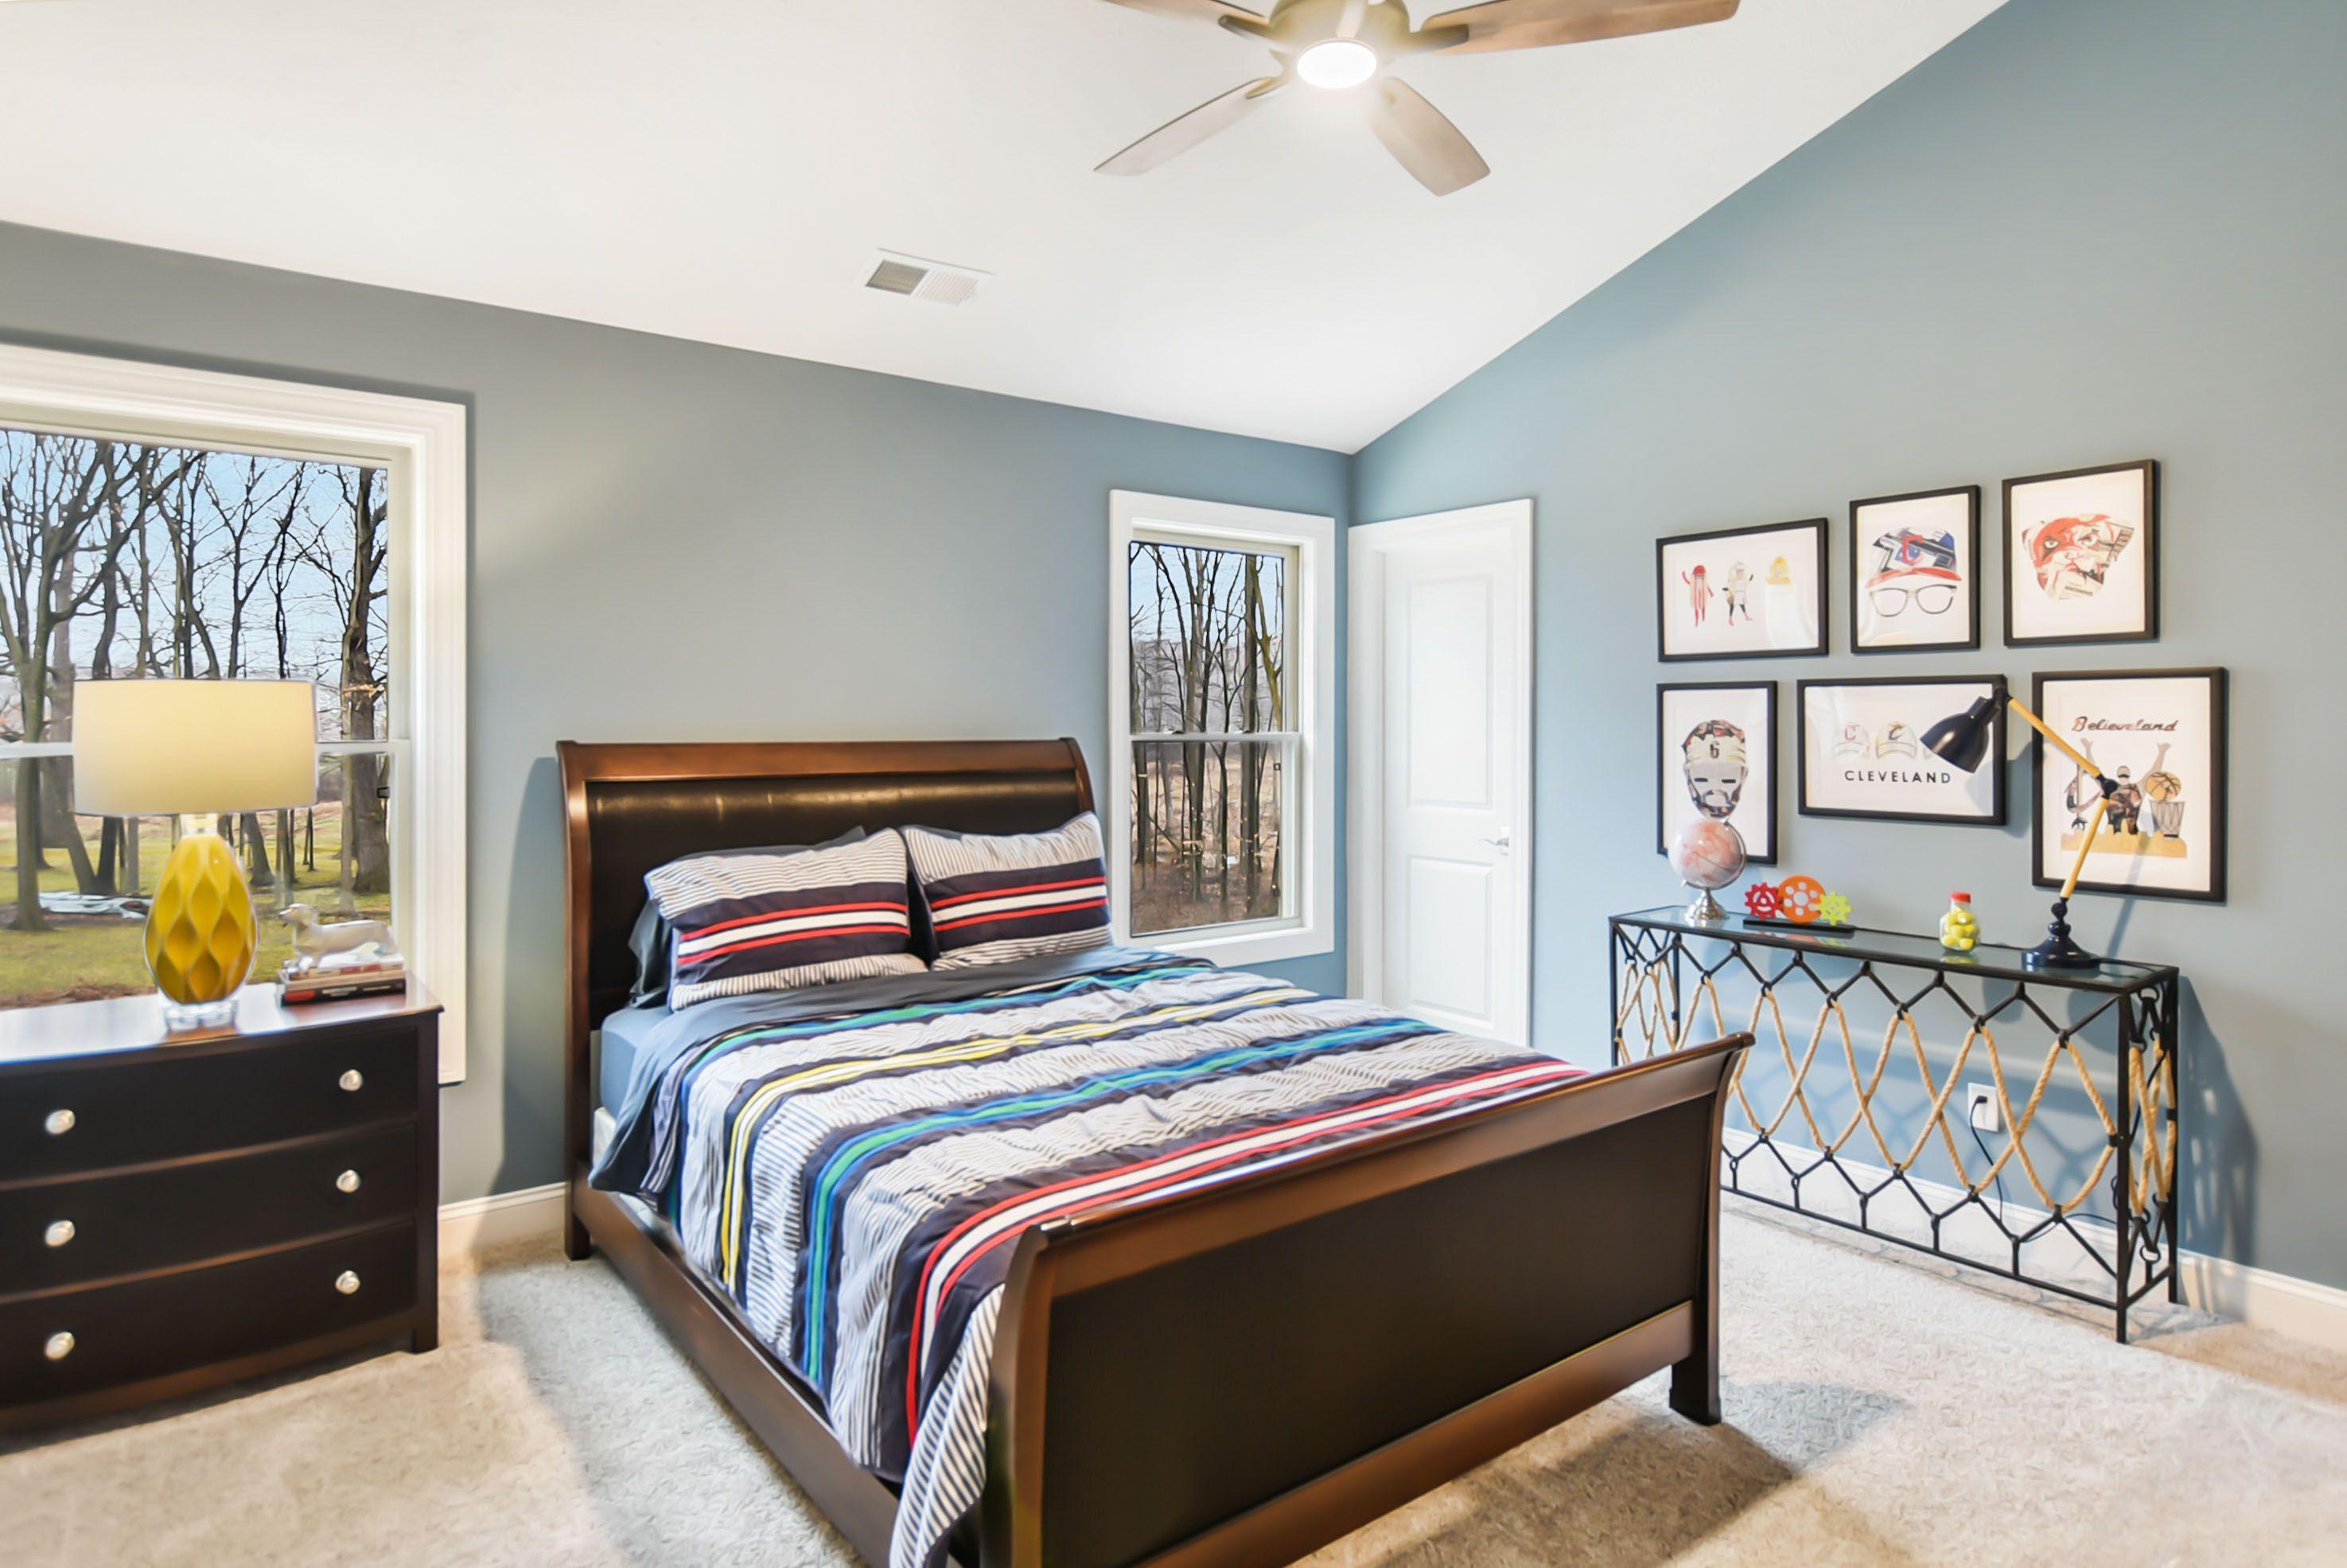 Bedroom featured in the Mercato By Parkview Custom Homes  in Cleveland, OH